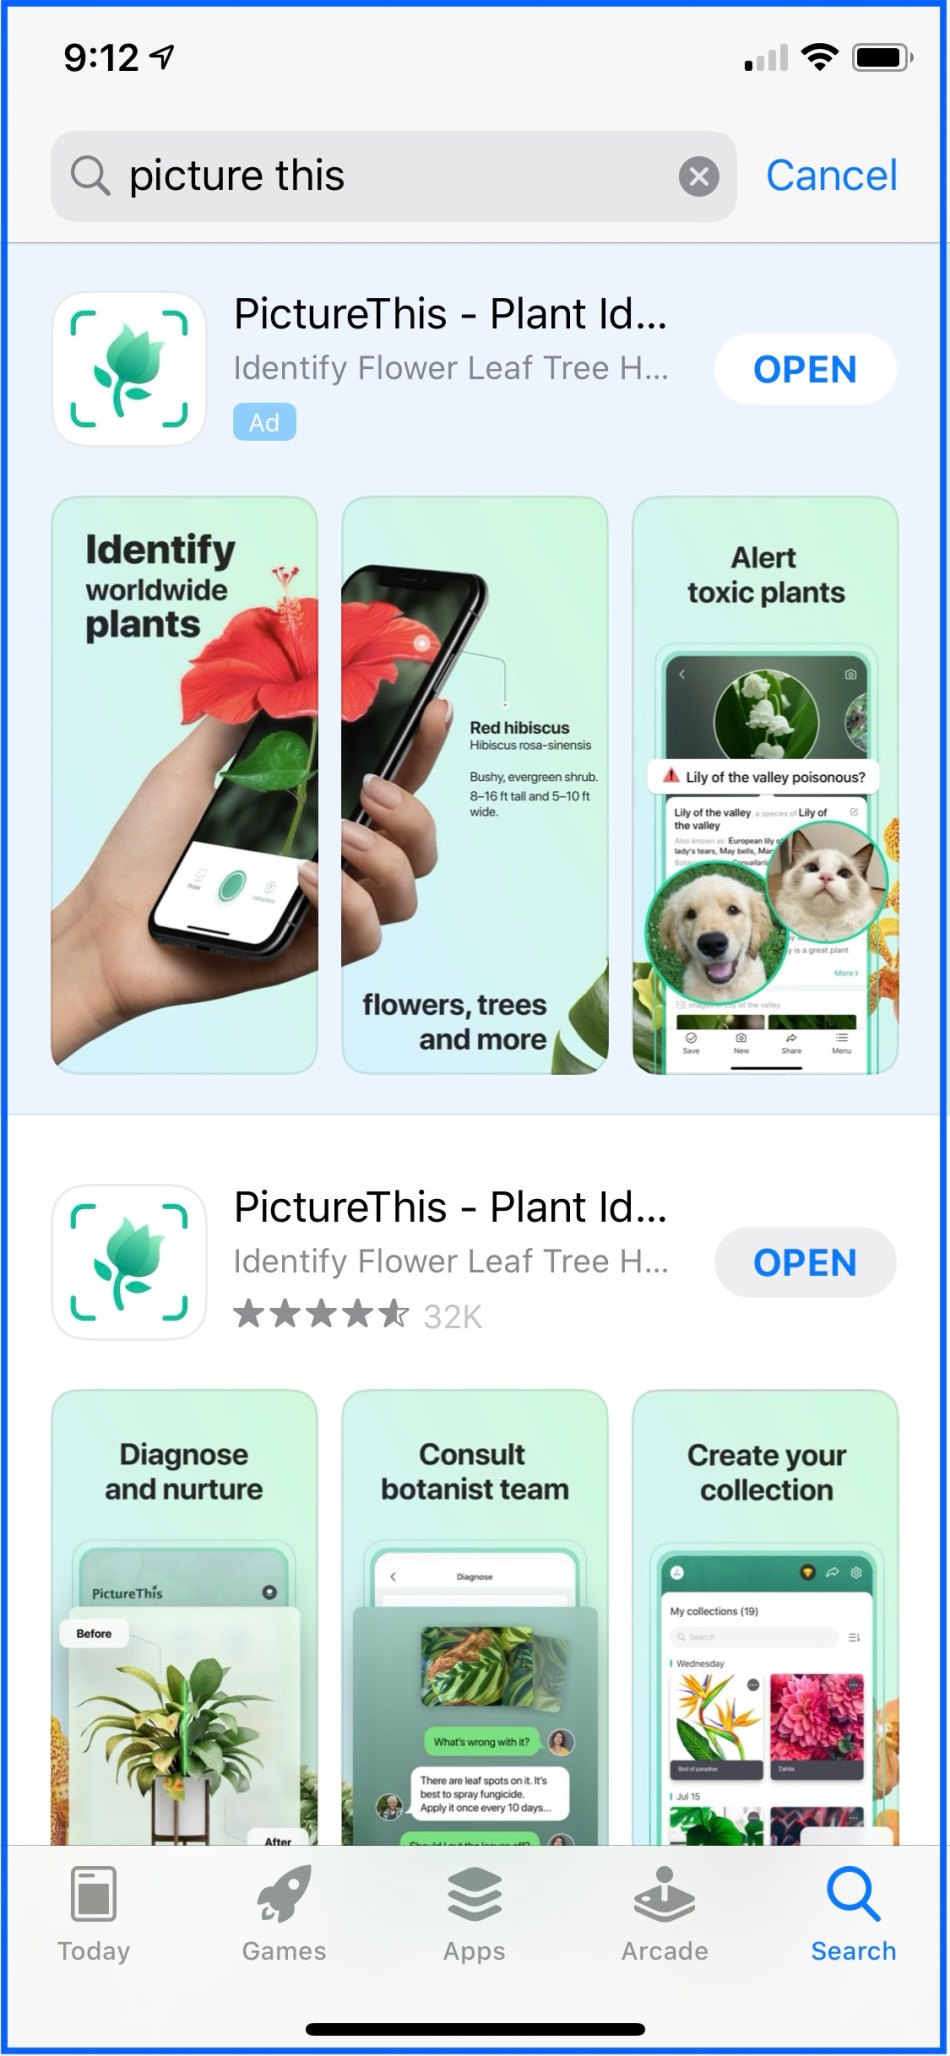 PictureThis ad as it appears in the App Store